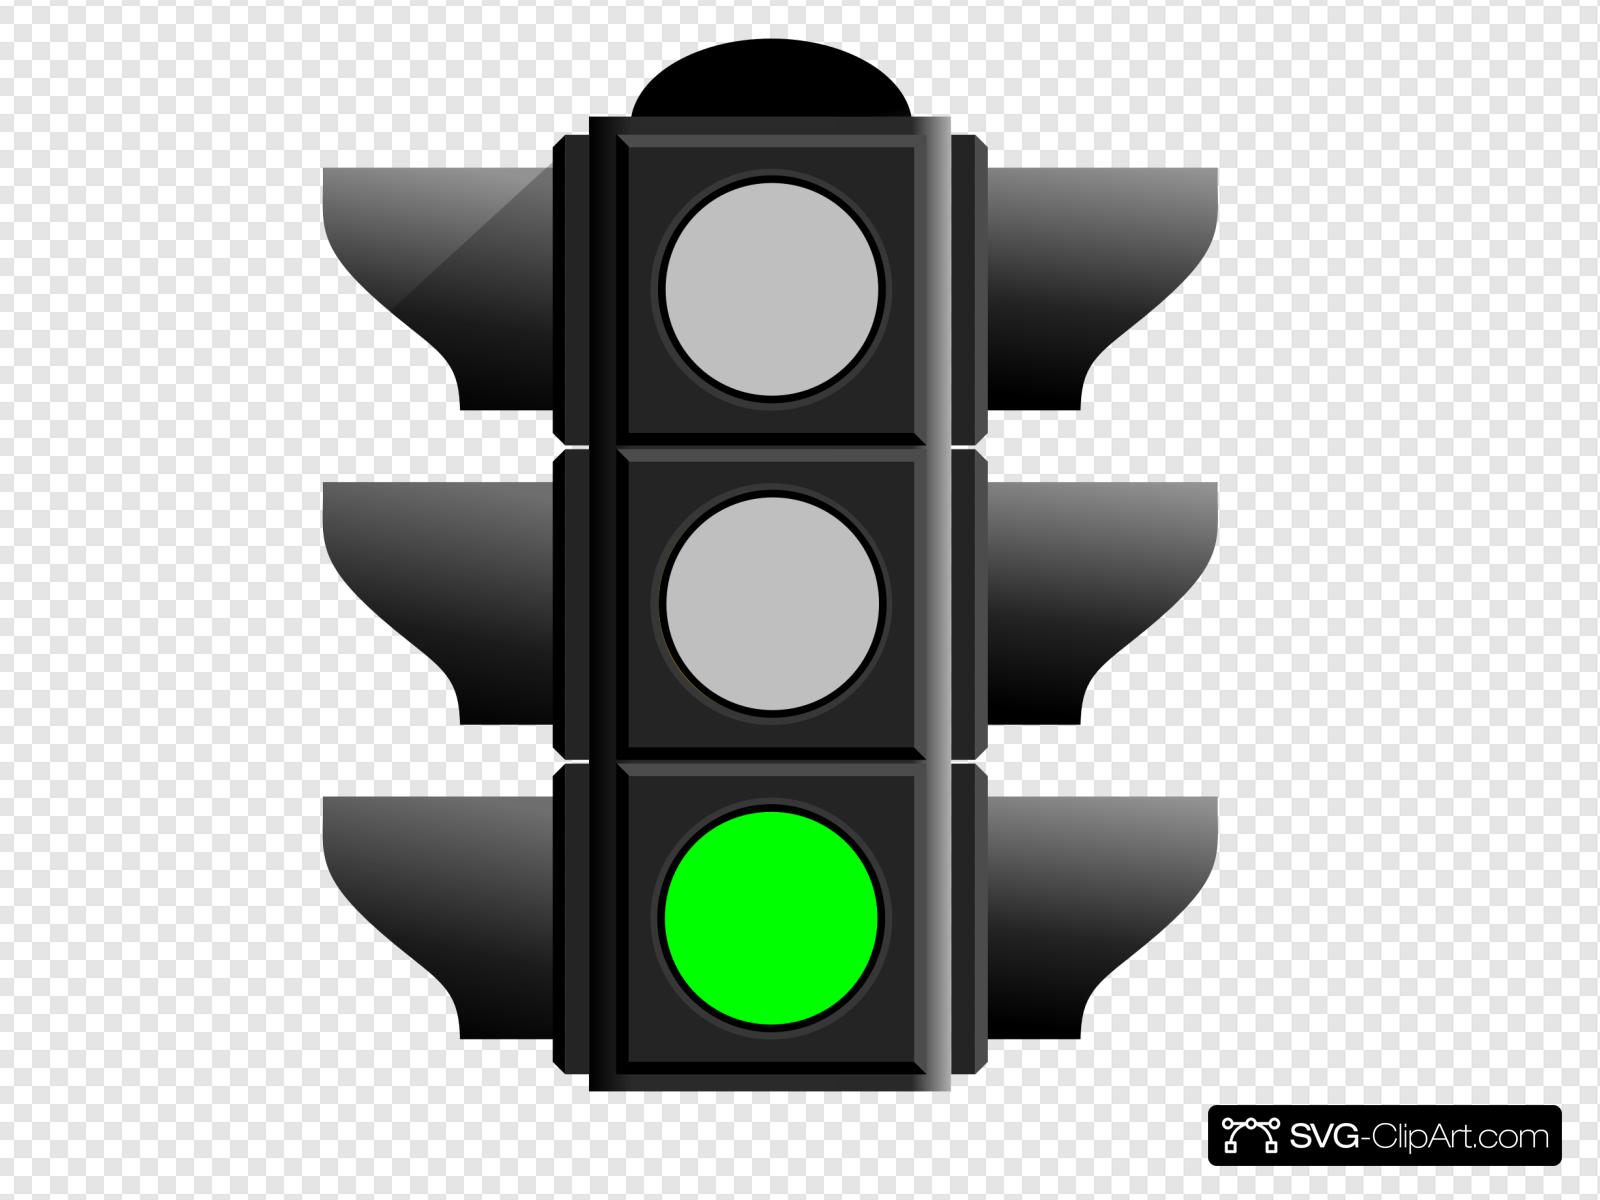 Green Traffic Light Clip art, Icon and SVG.